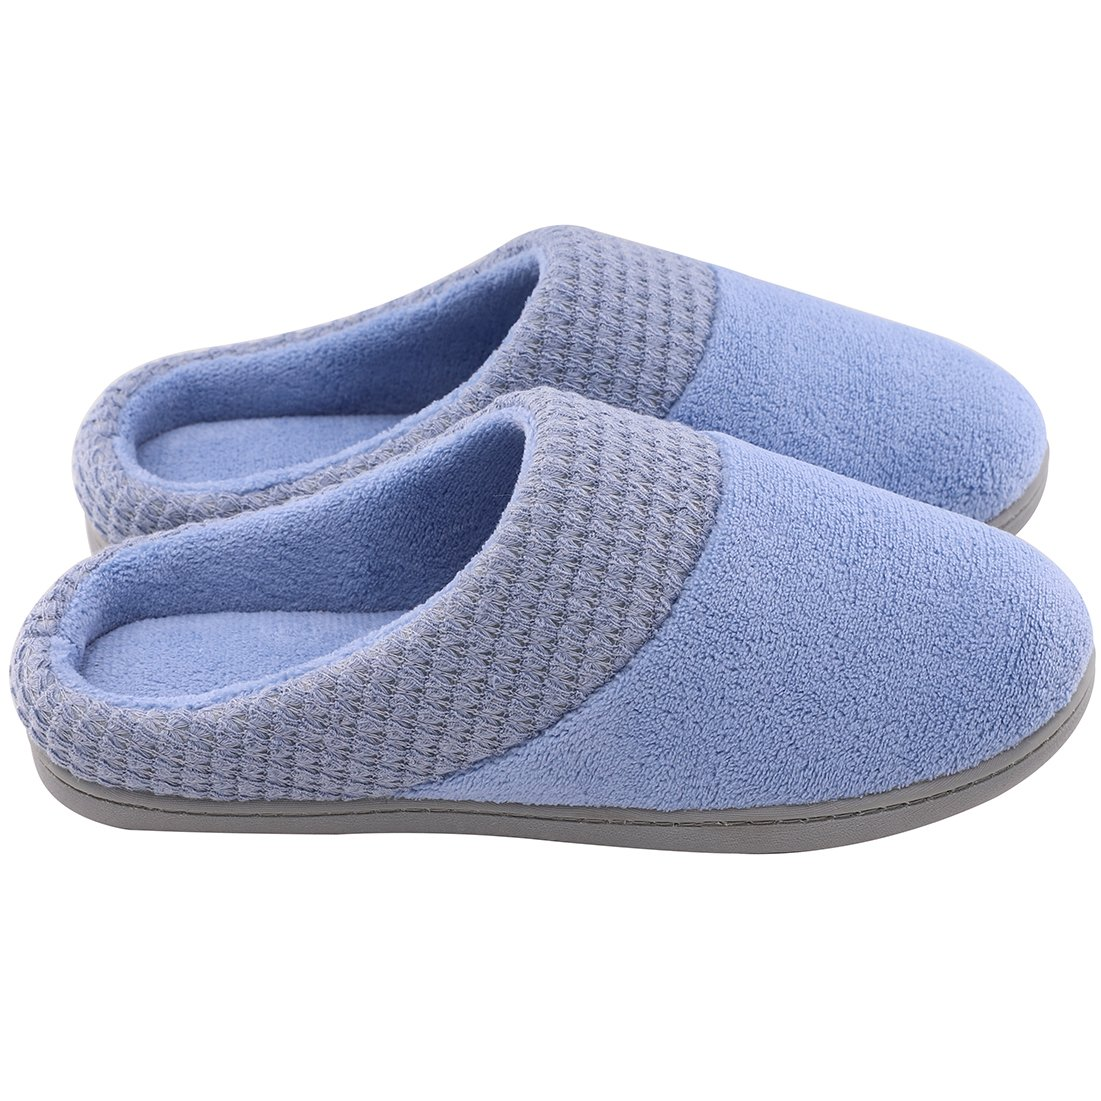 Women's Comfort Terry Plush Memory Foam Slippers Slip-Resistant Indoor & Outdoor House Shoes w/Classic Fabric Knit Collar (Large/9-10 B(M) US, Blue) by ULTRAIDEAS (Image #4)